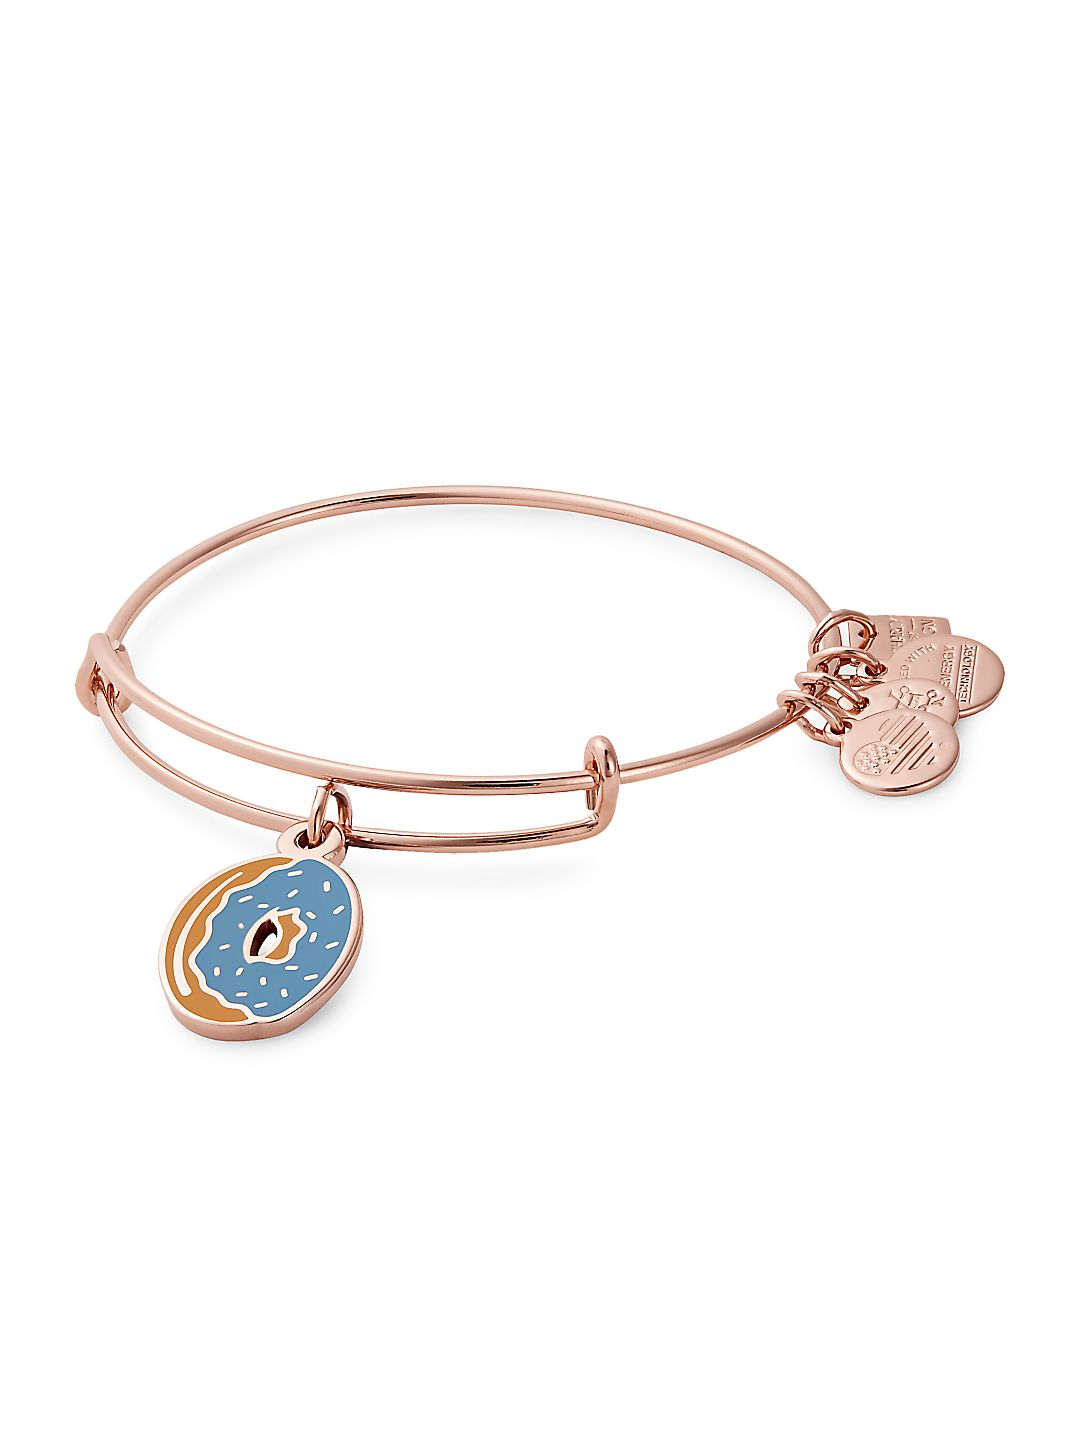 Charity By Design, Donut Charm Bangle